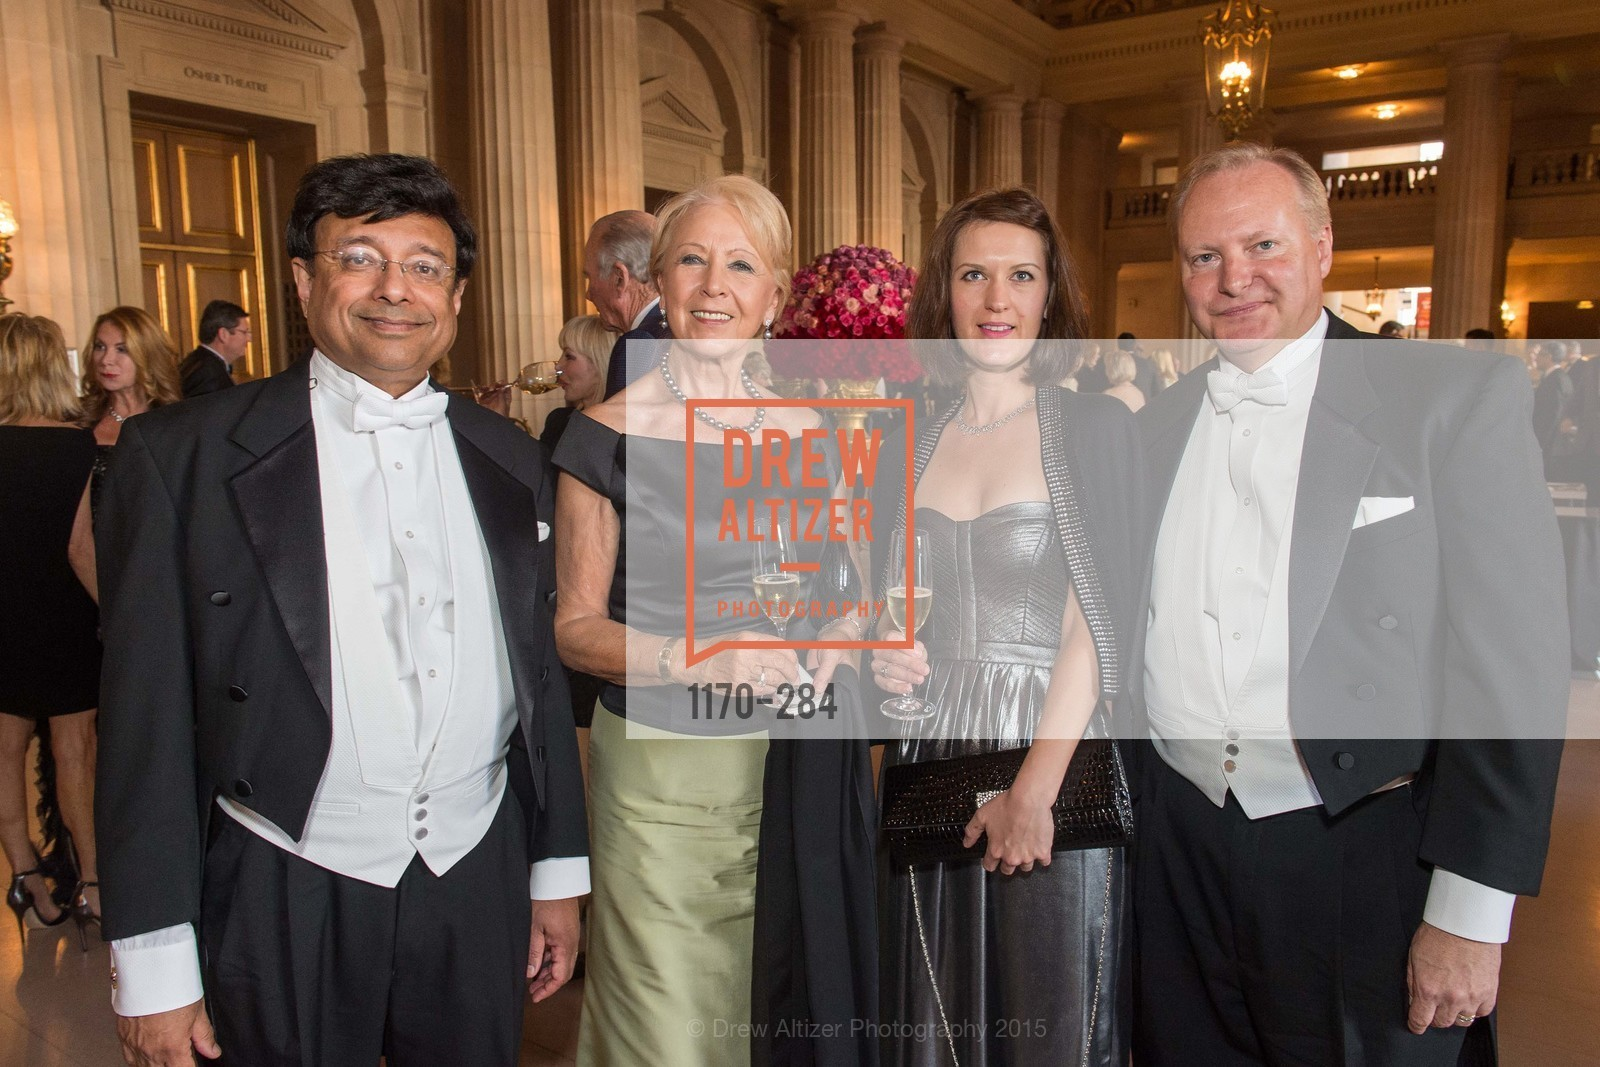 Shariq Yosufzai, Angela Young, Melissa Carrish, Brian James, Opera Ball 2015: Moonlight & Music, War Memorial Opera House. 301 Van Ness Ave, September 11th, 2015,Drew Altizer, Drew Altizer Photography, full-service agency, private events, San Francisco photographer, photographer california